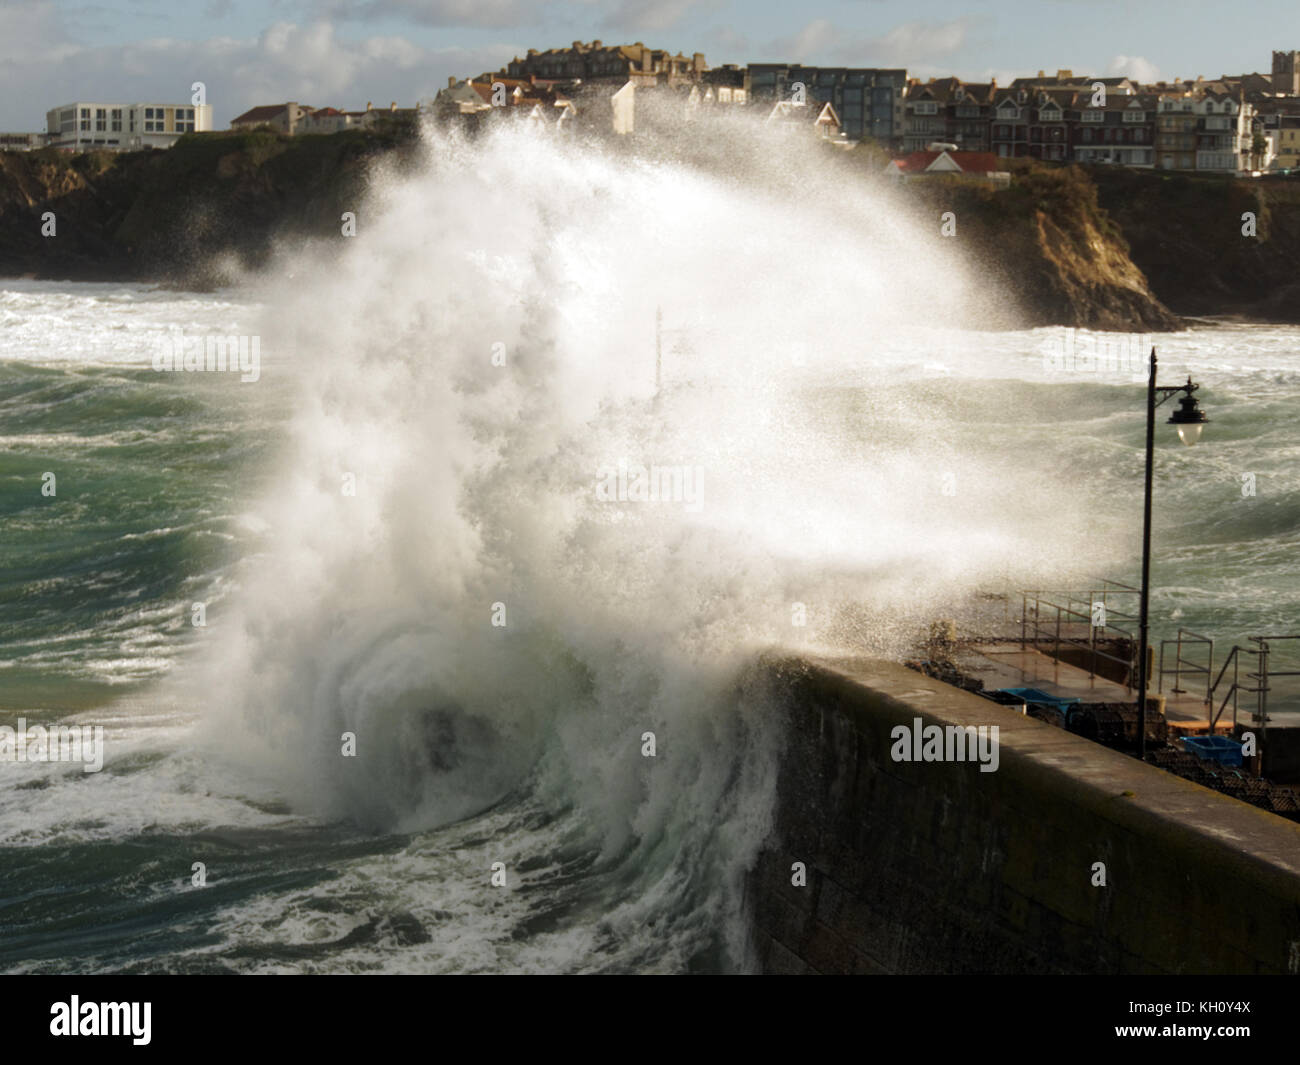 Newquay, UK. 12th Nov, 2017. UK weather Northerly rough seas pound Cornish coast drawing spectators and daredevils.12th, - Stock Image